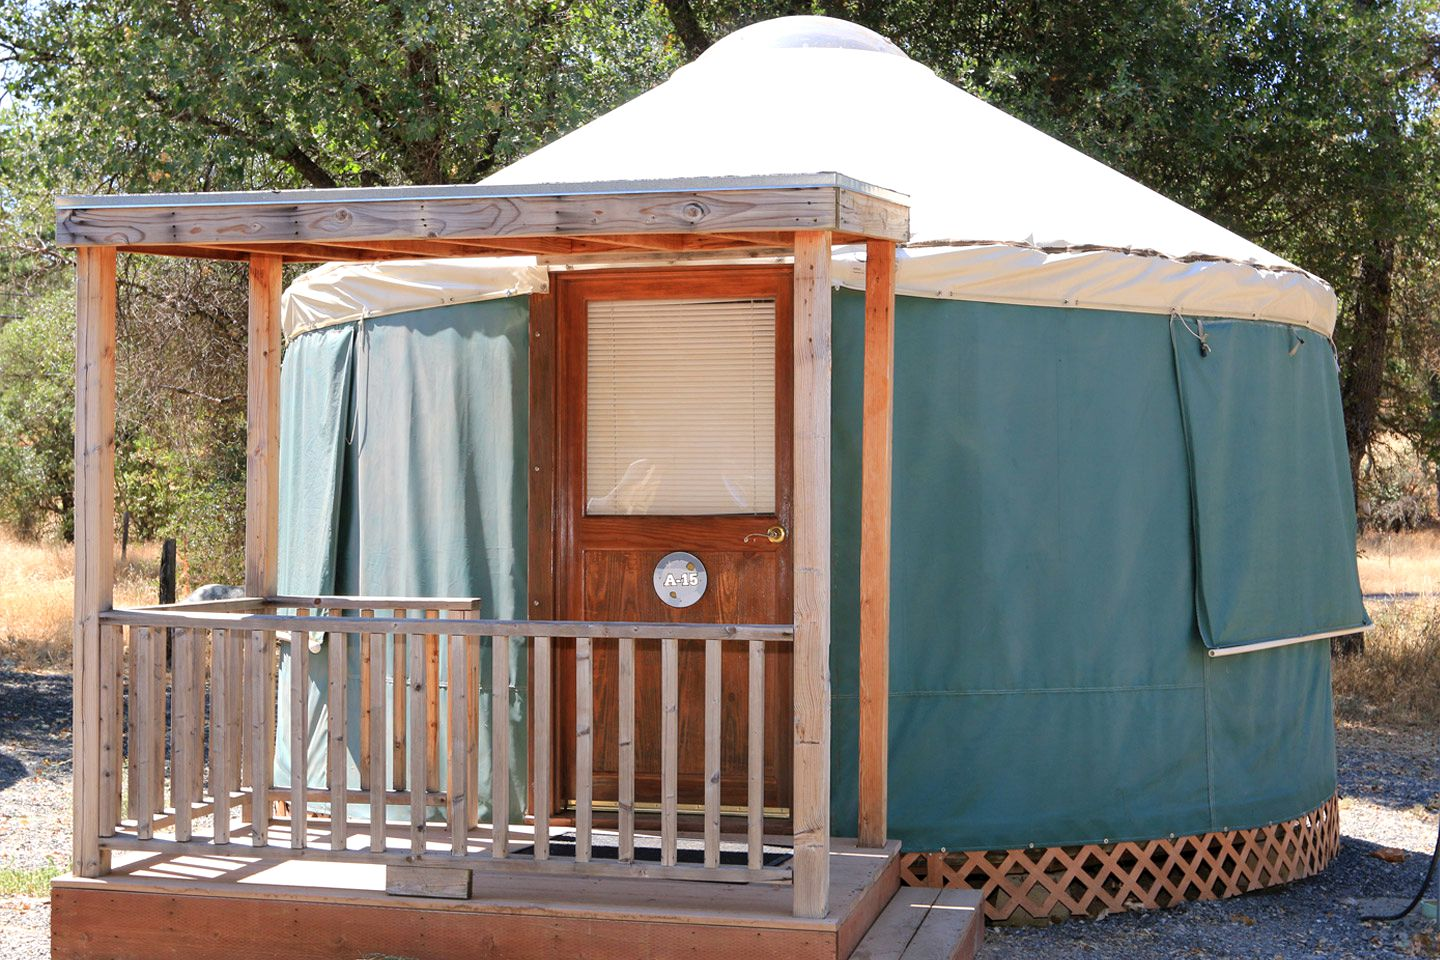 Yosemite yurts for national park camping in California.